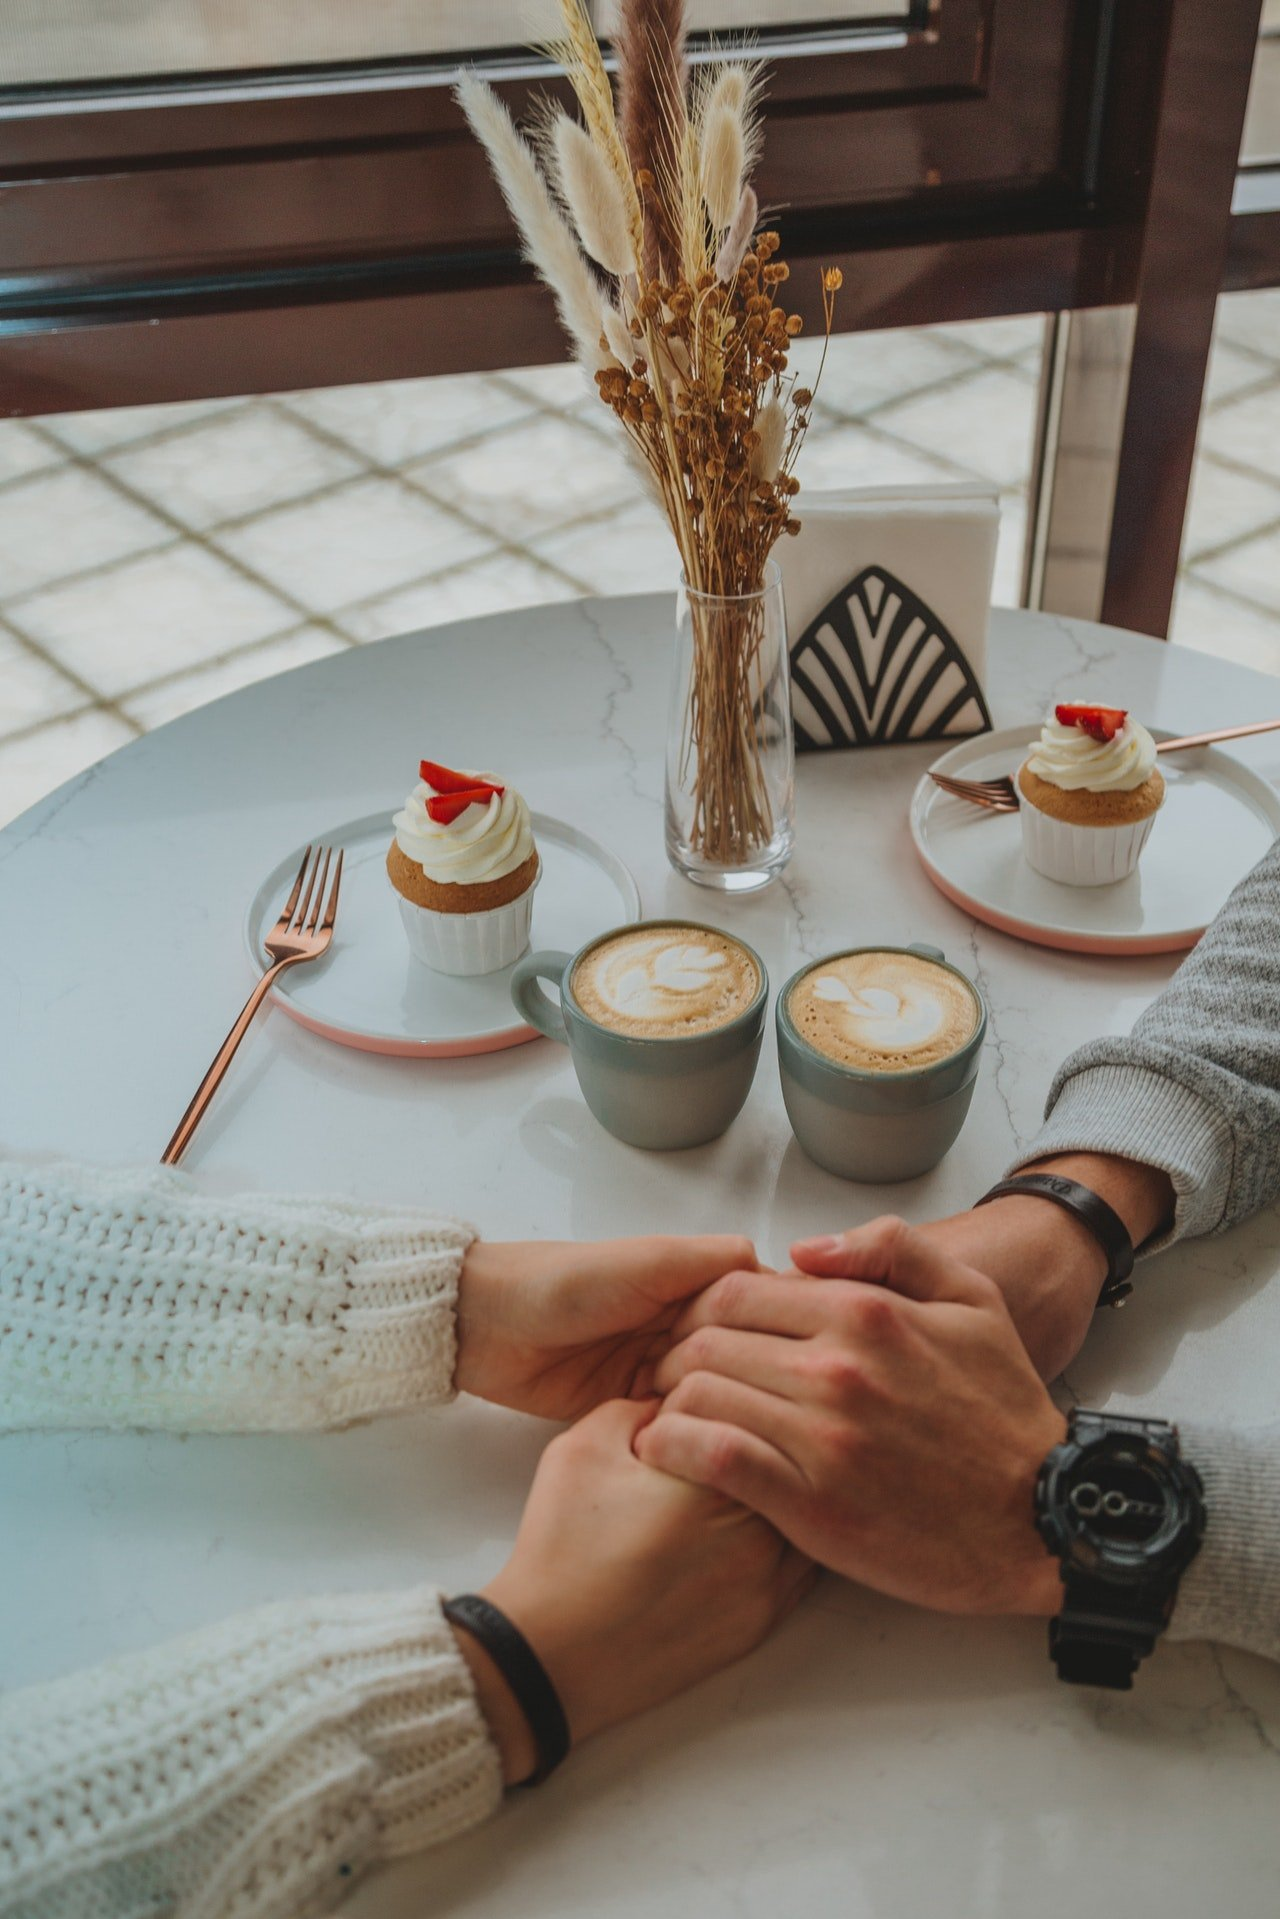 Jared and I went for coffee, and eventually, fell in love.   Source: Pexels